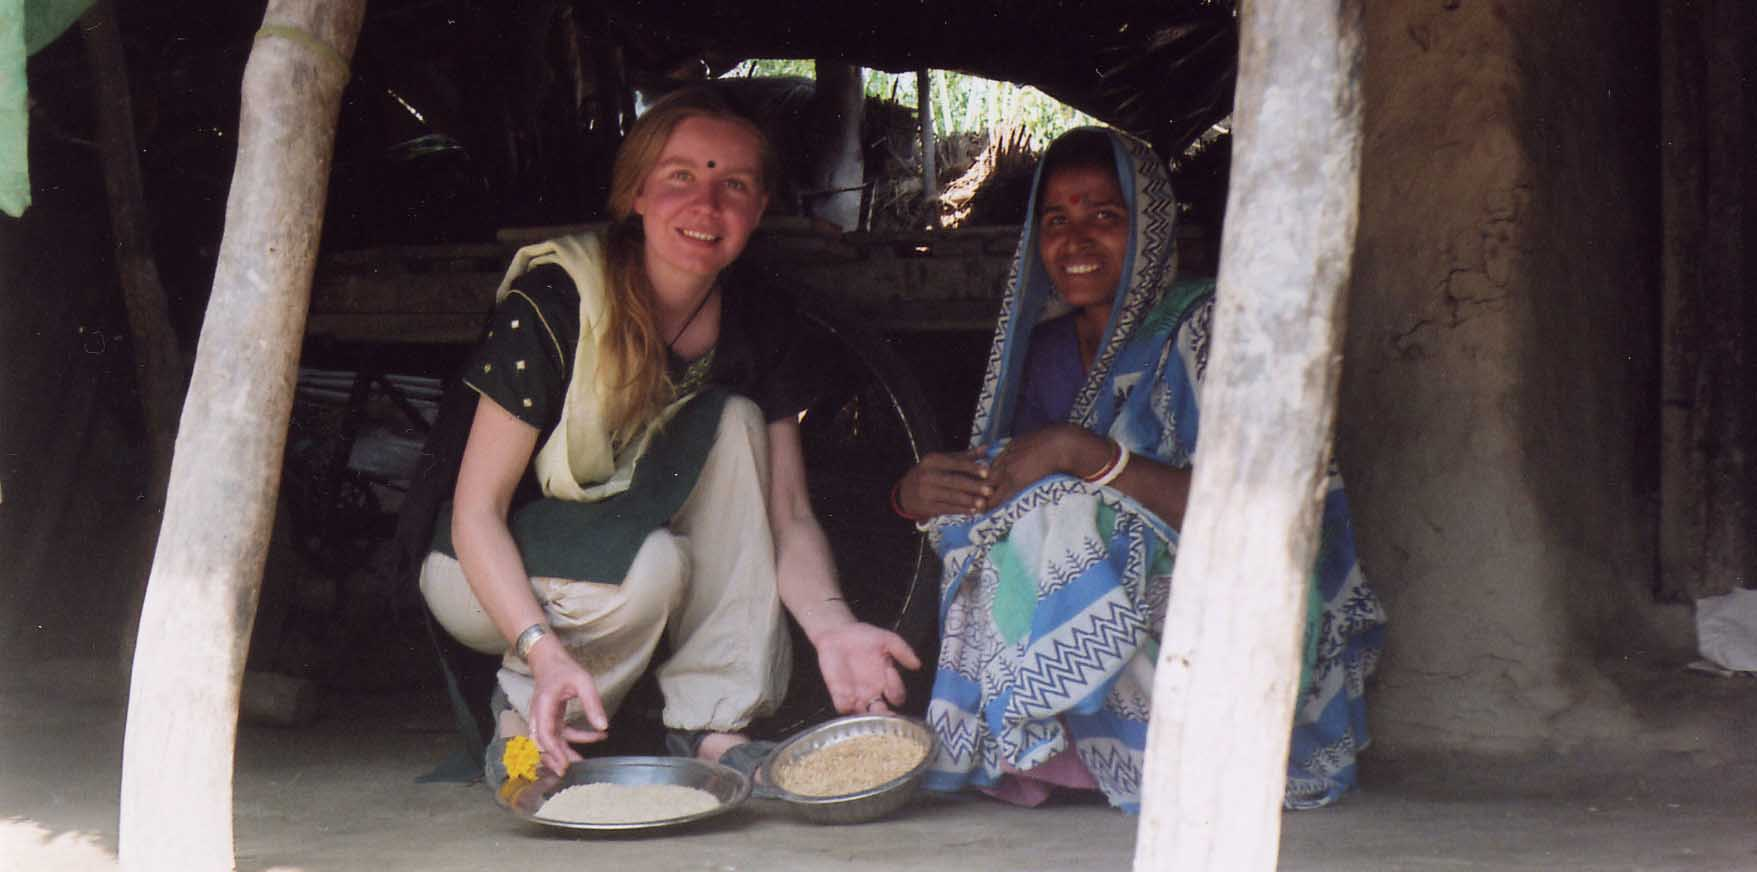 Sinead with widow and rice.